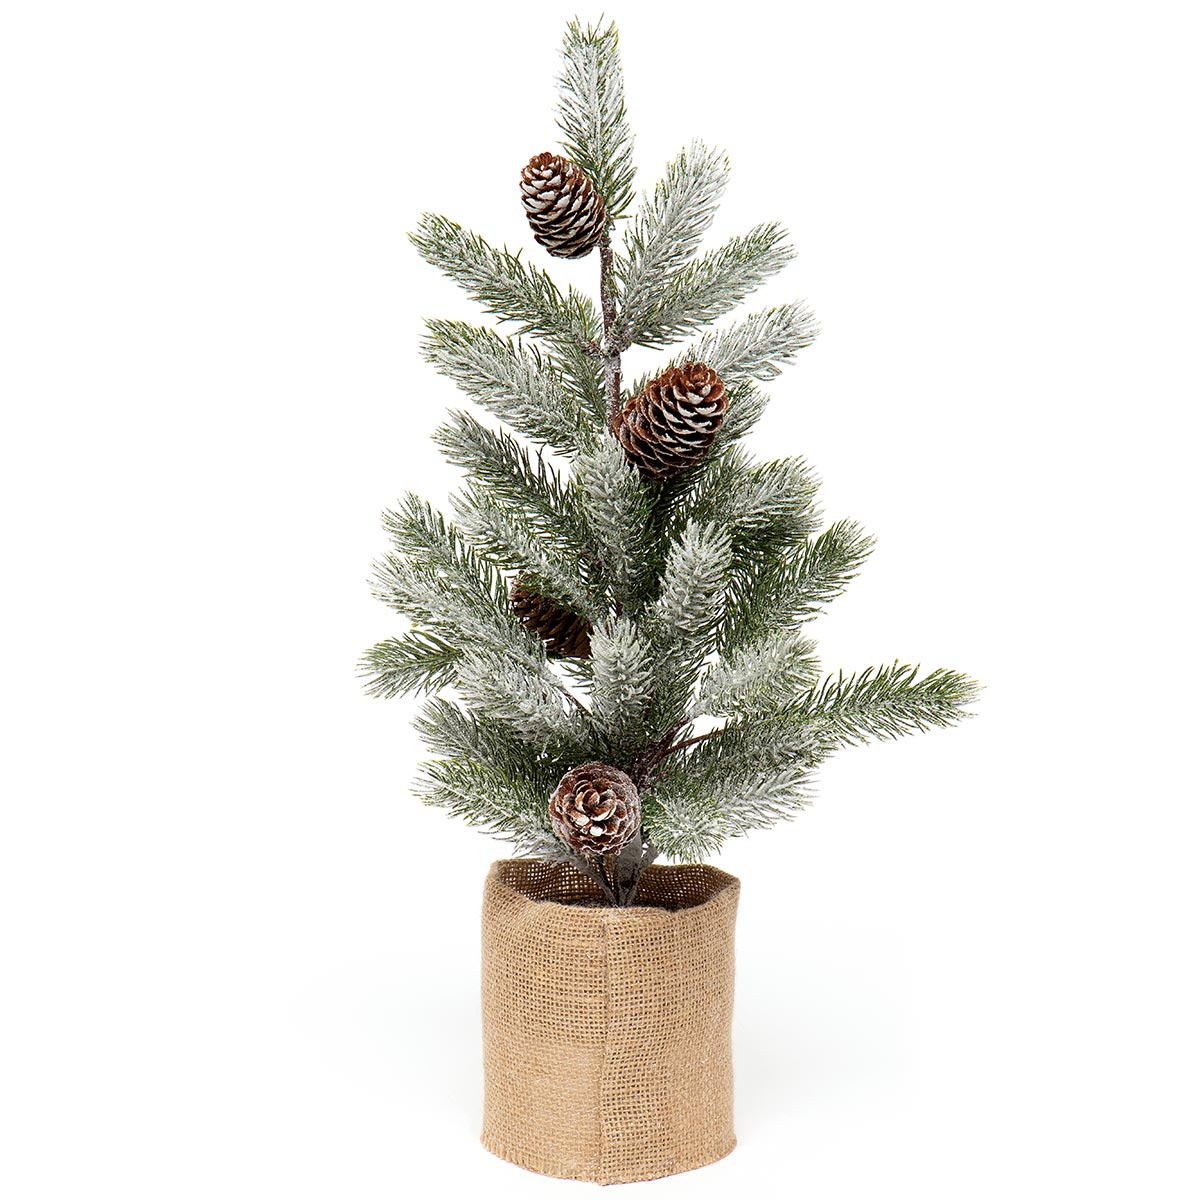 SPRUCE PINE TREE IN BURLAP BASE WITH SNOW AND PINECONES